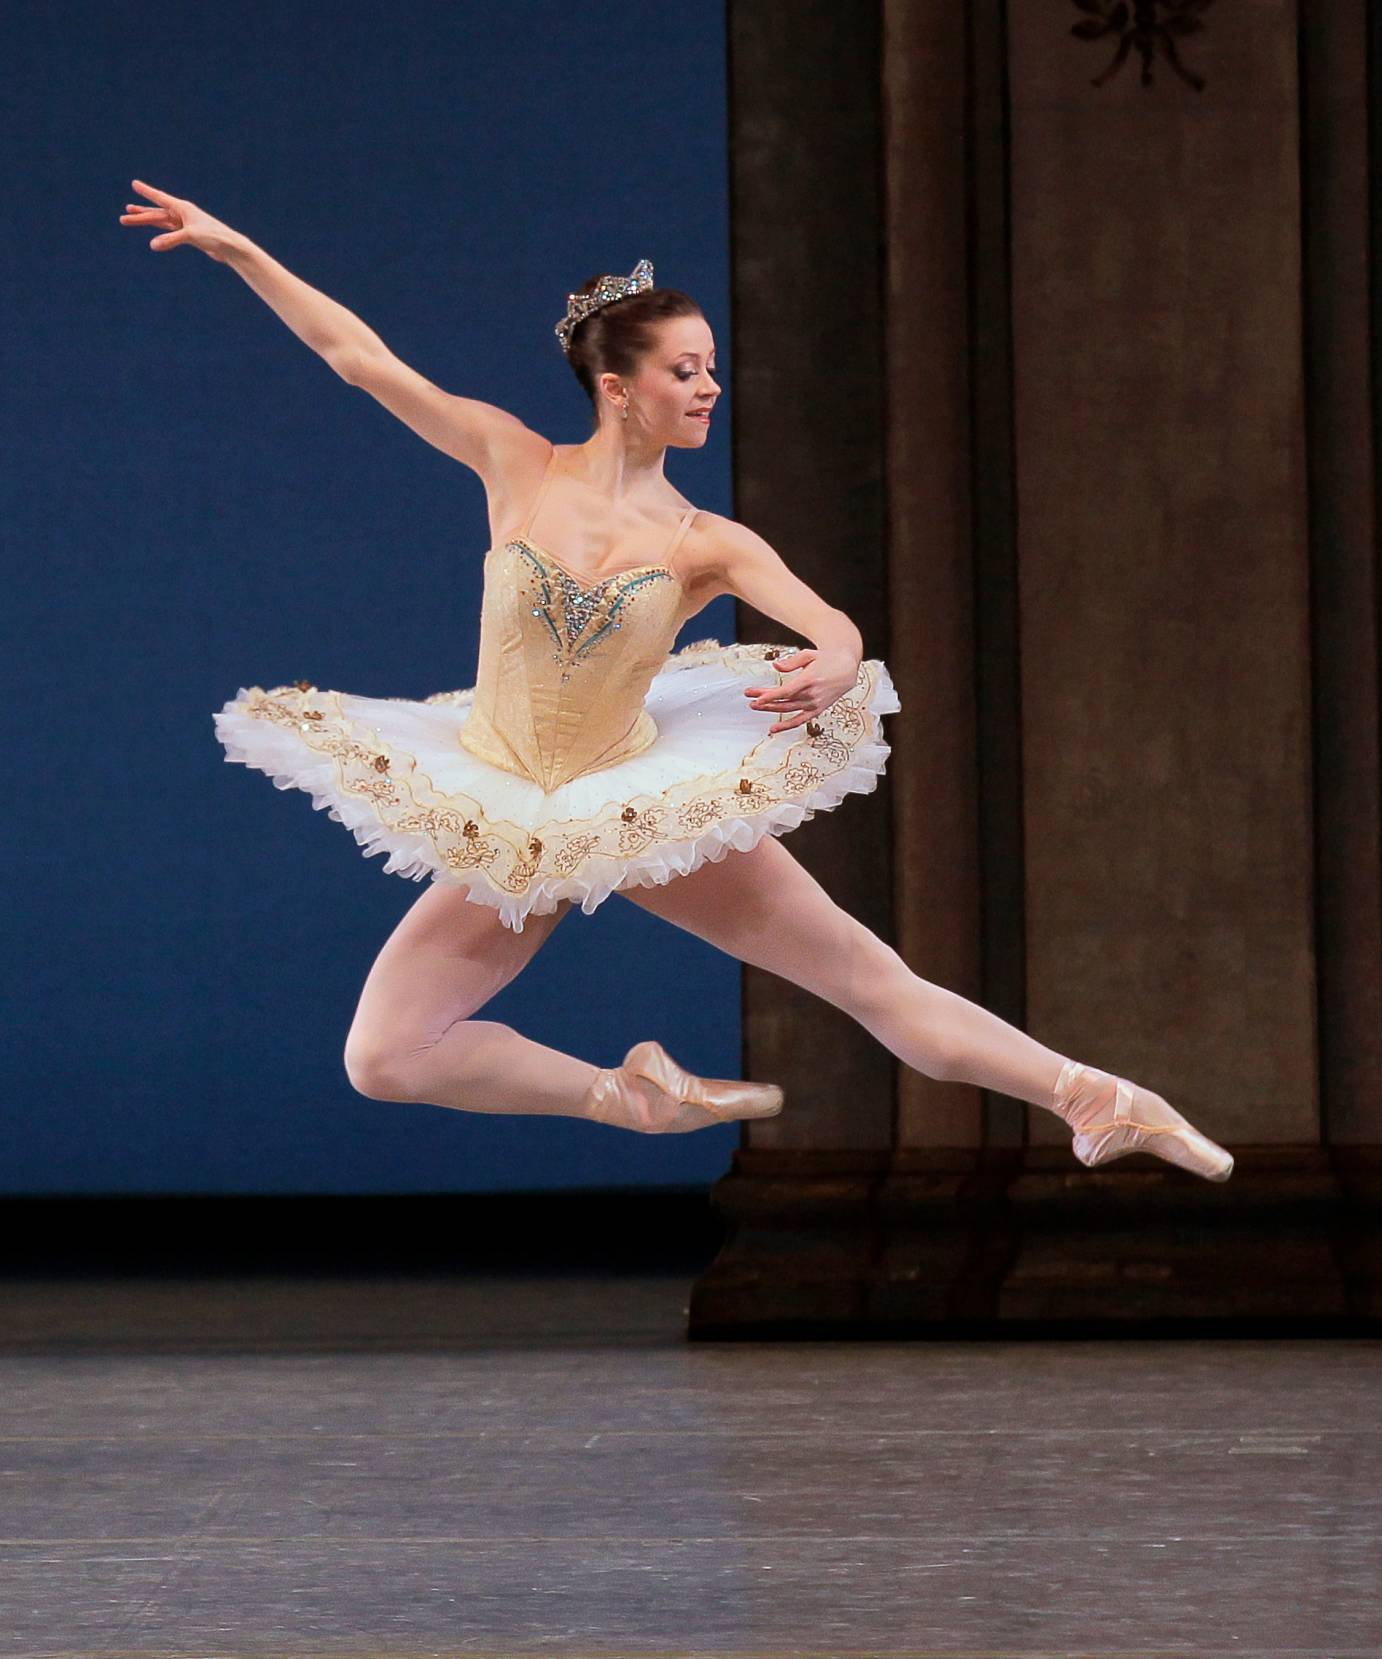 A woman in a gold tutu leaps sideways in profile